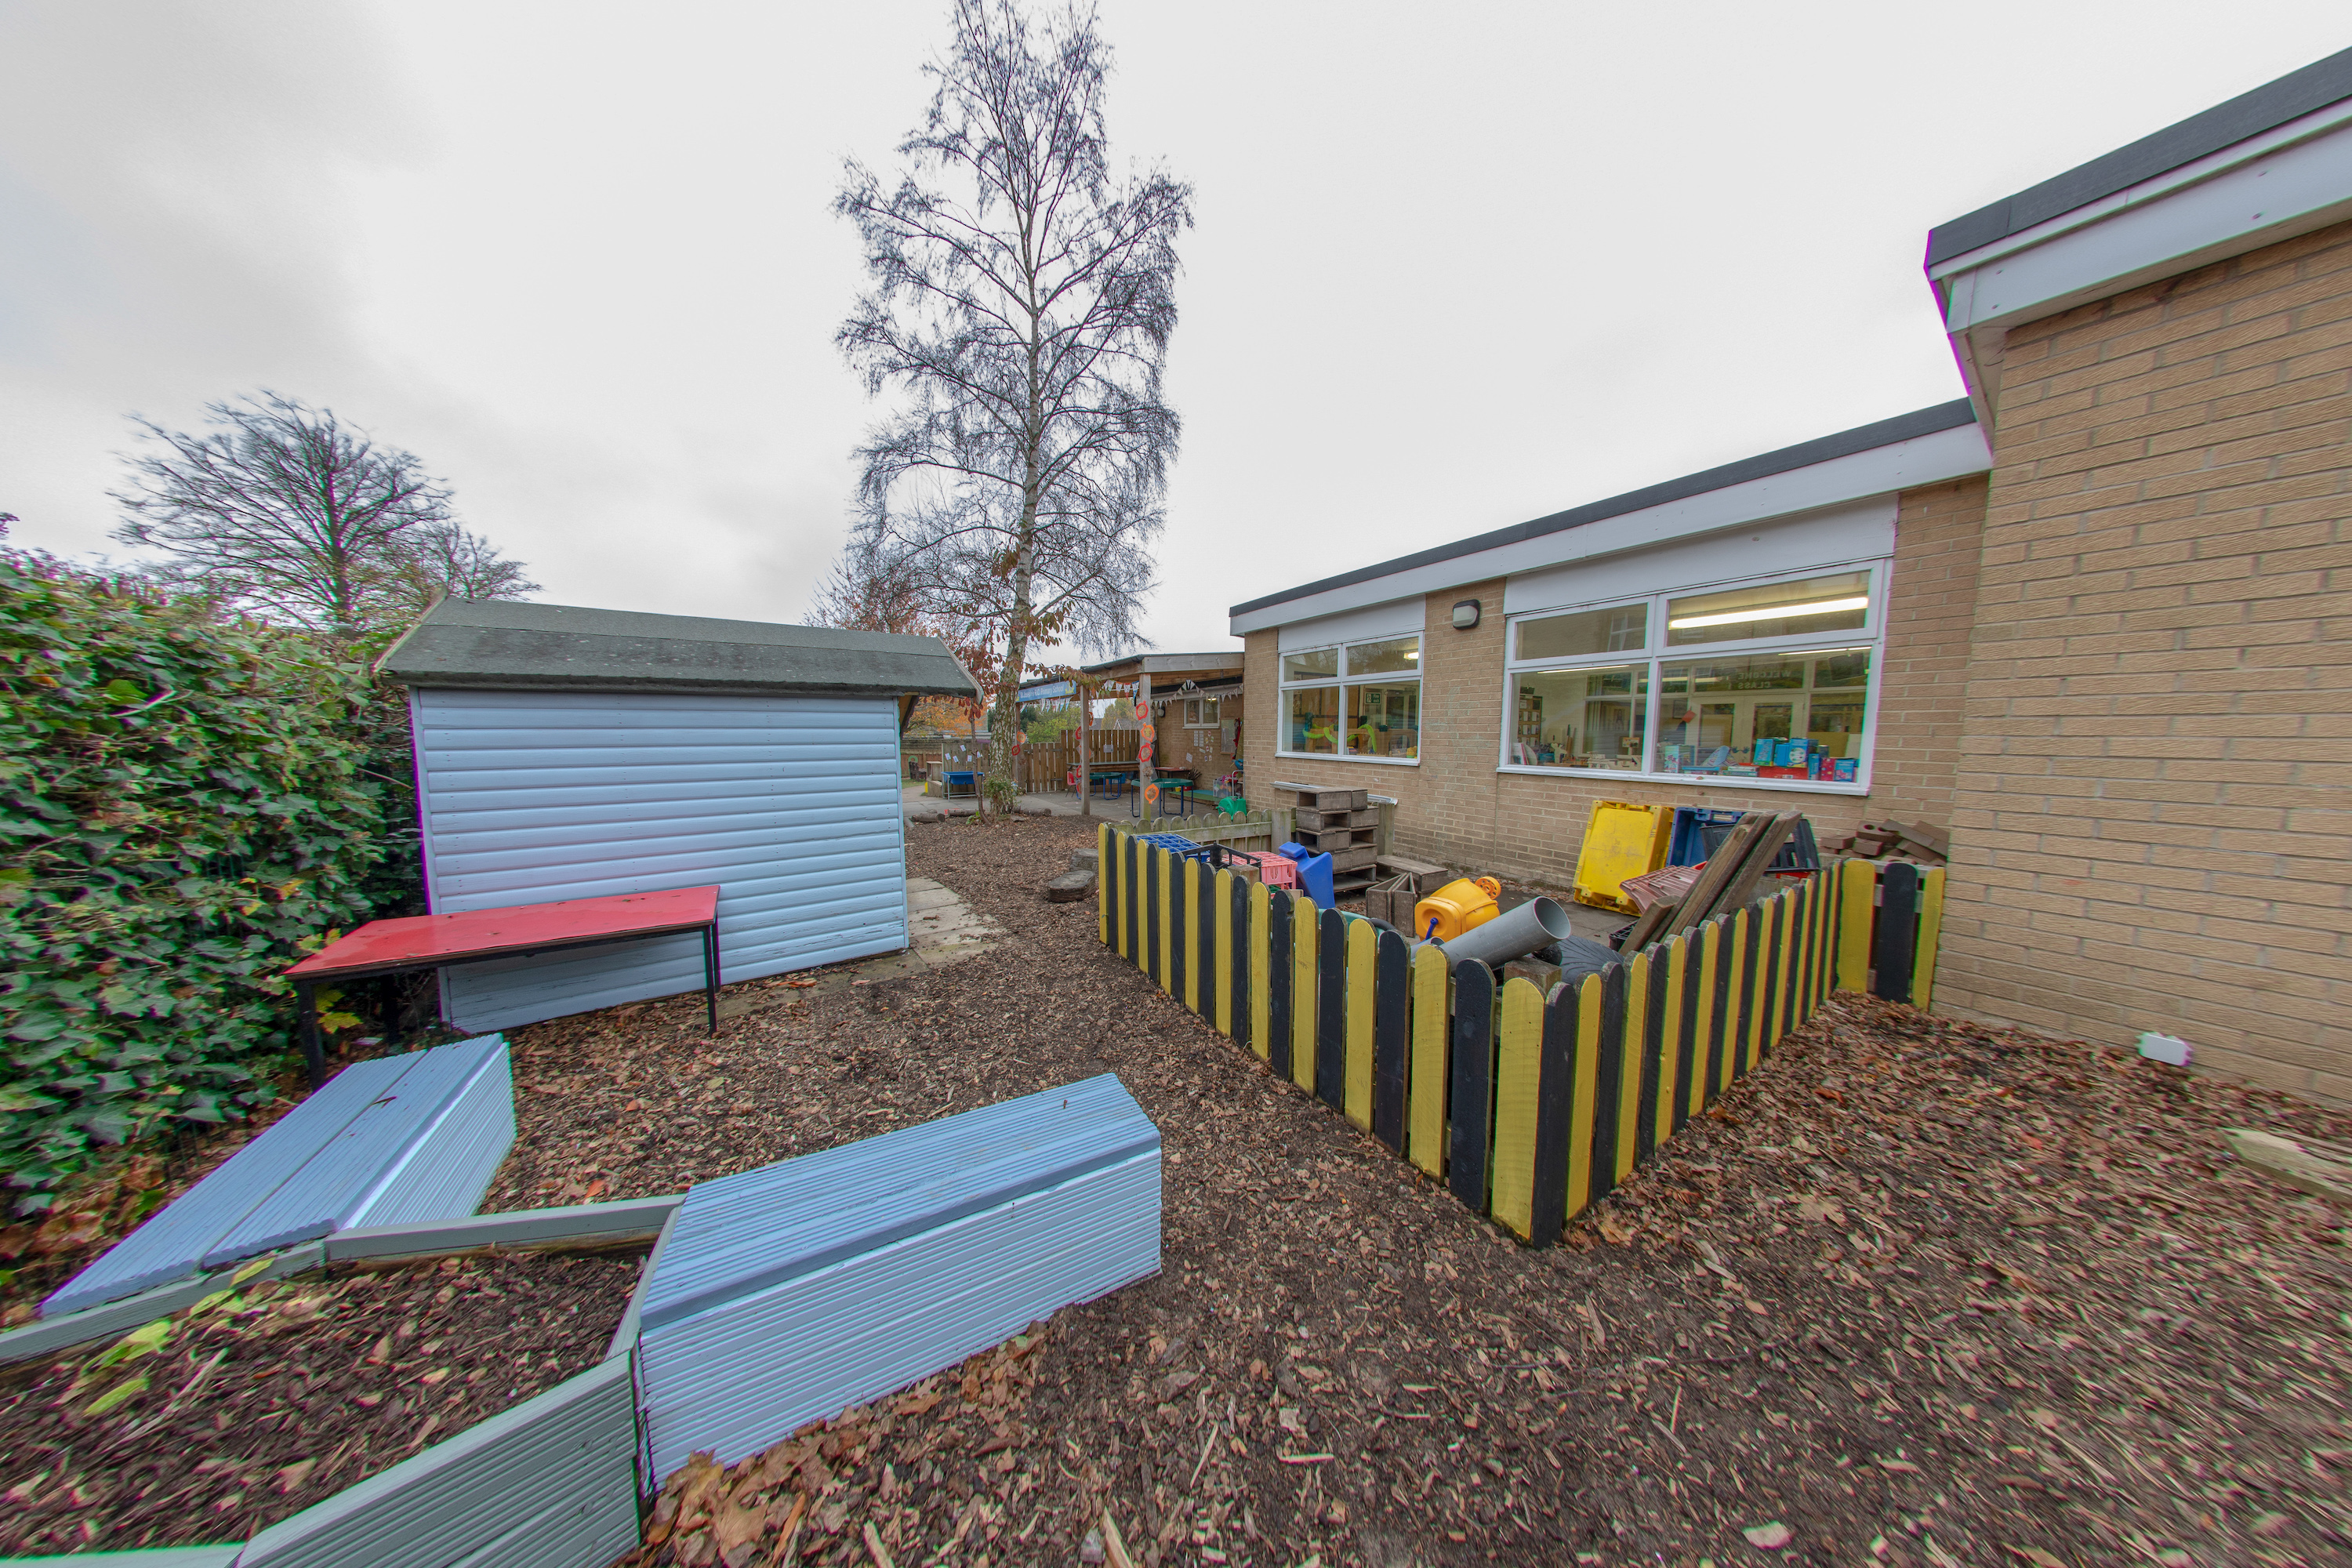 St Joseph's Roman Catholic Primary School